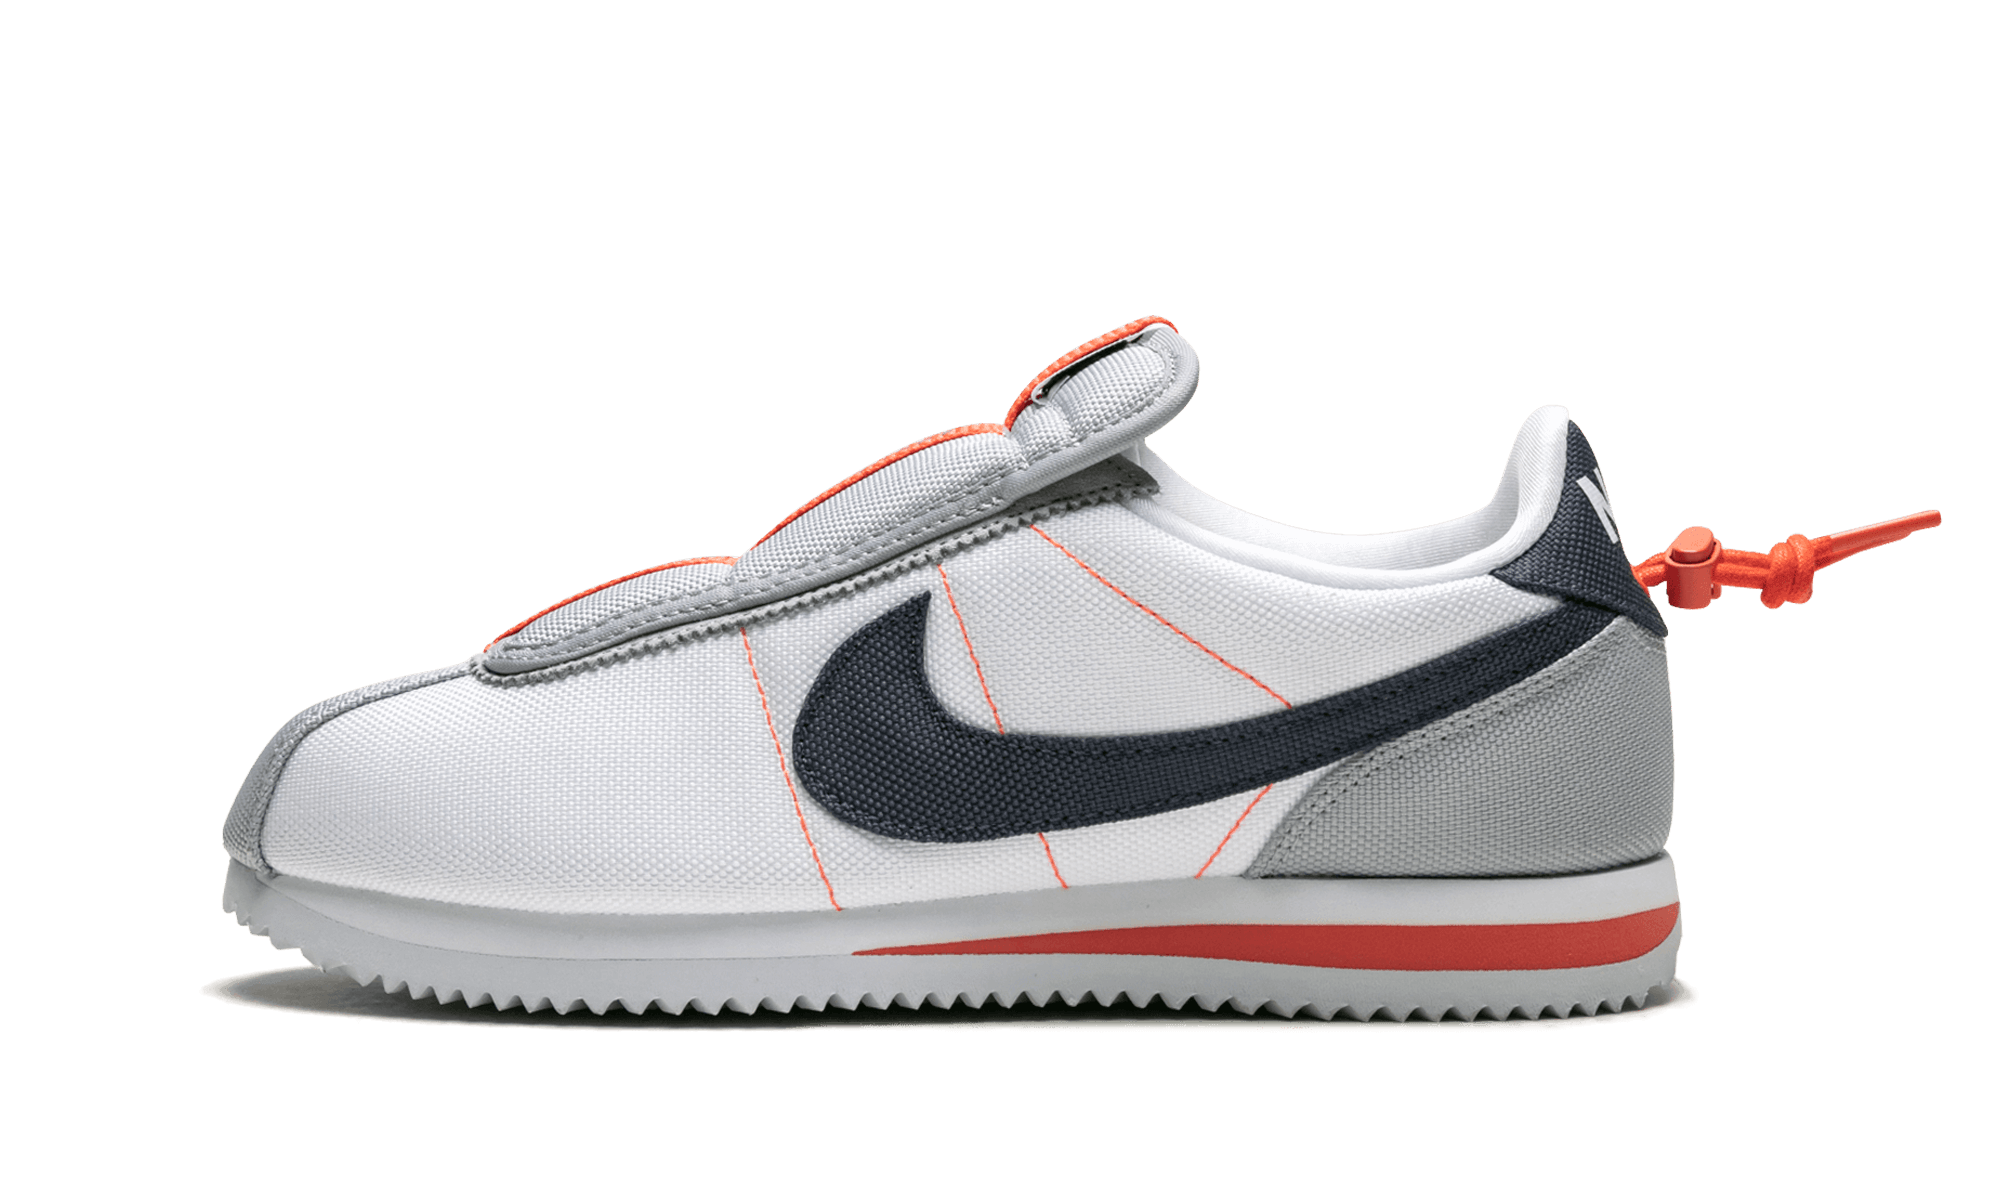 new arrival 02dc5 3b22d Nike Cortez Kenny 4 'Kendrick Lamar' - Size 6 | Gift of ...